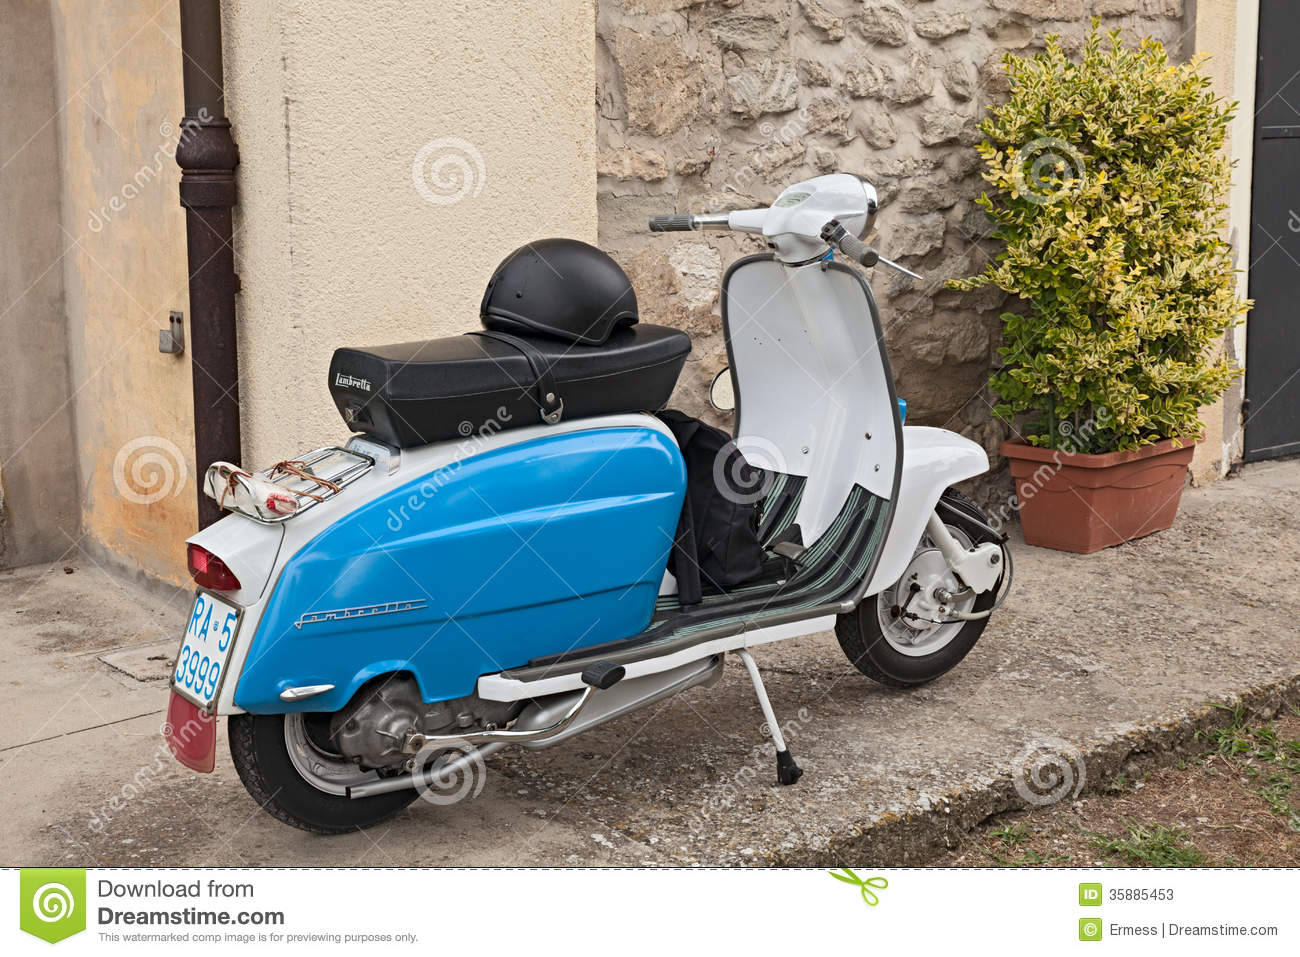 Vintage Italian Scooter Lambretta Editorial Stock Photo ... Lambretta Scooter Vintage